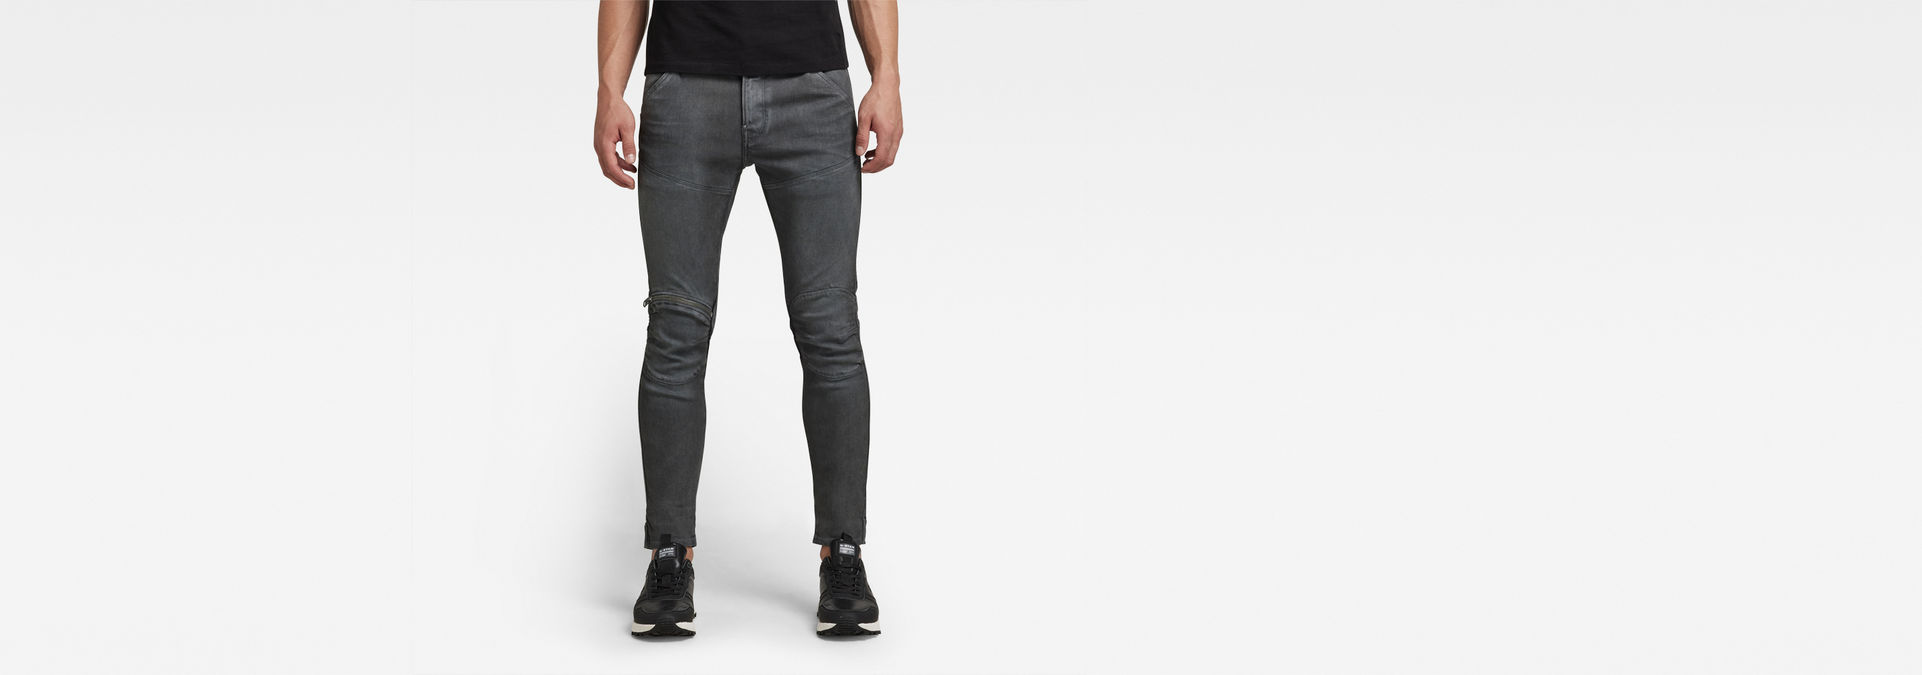 G-STAR RAW Girls Sp22657 Pant 5620 Jeans